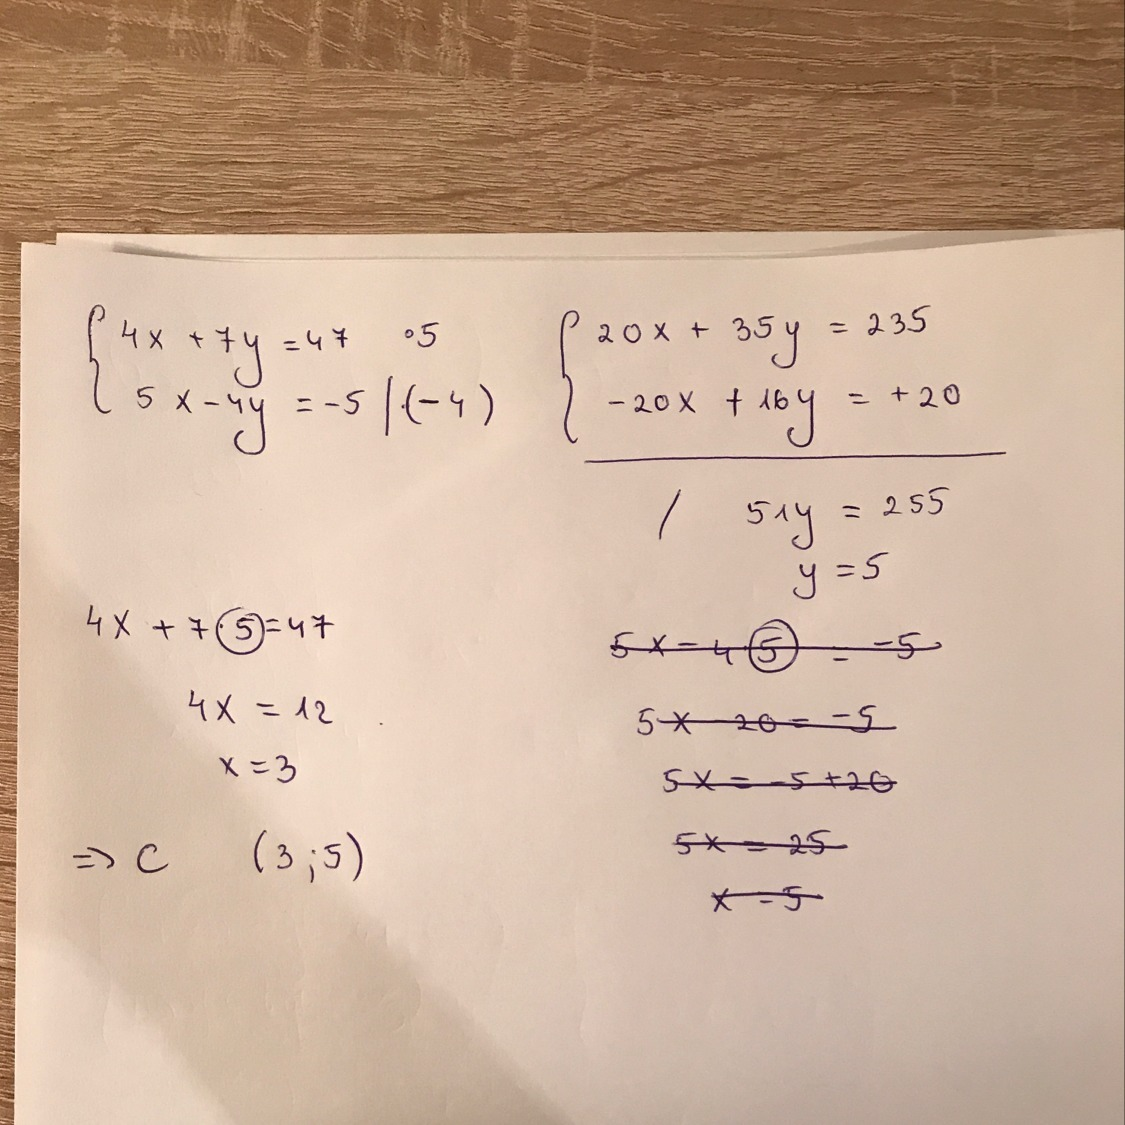 Solve The System Of Equations And Choose The Correct Ordered Brainly